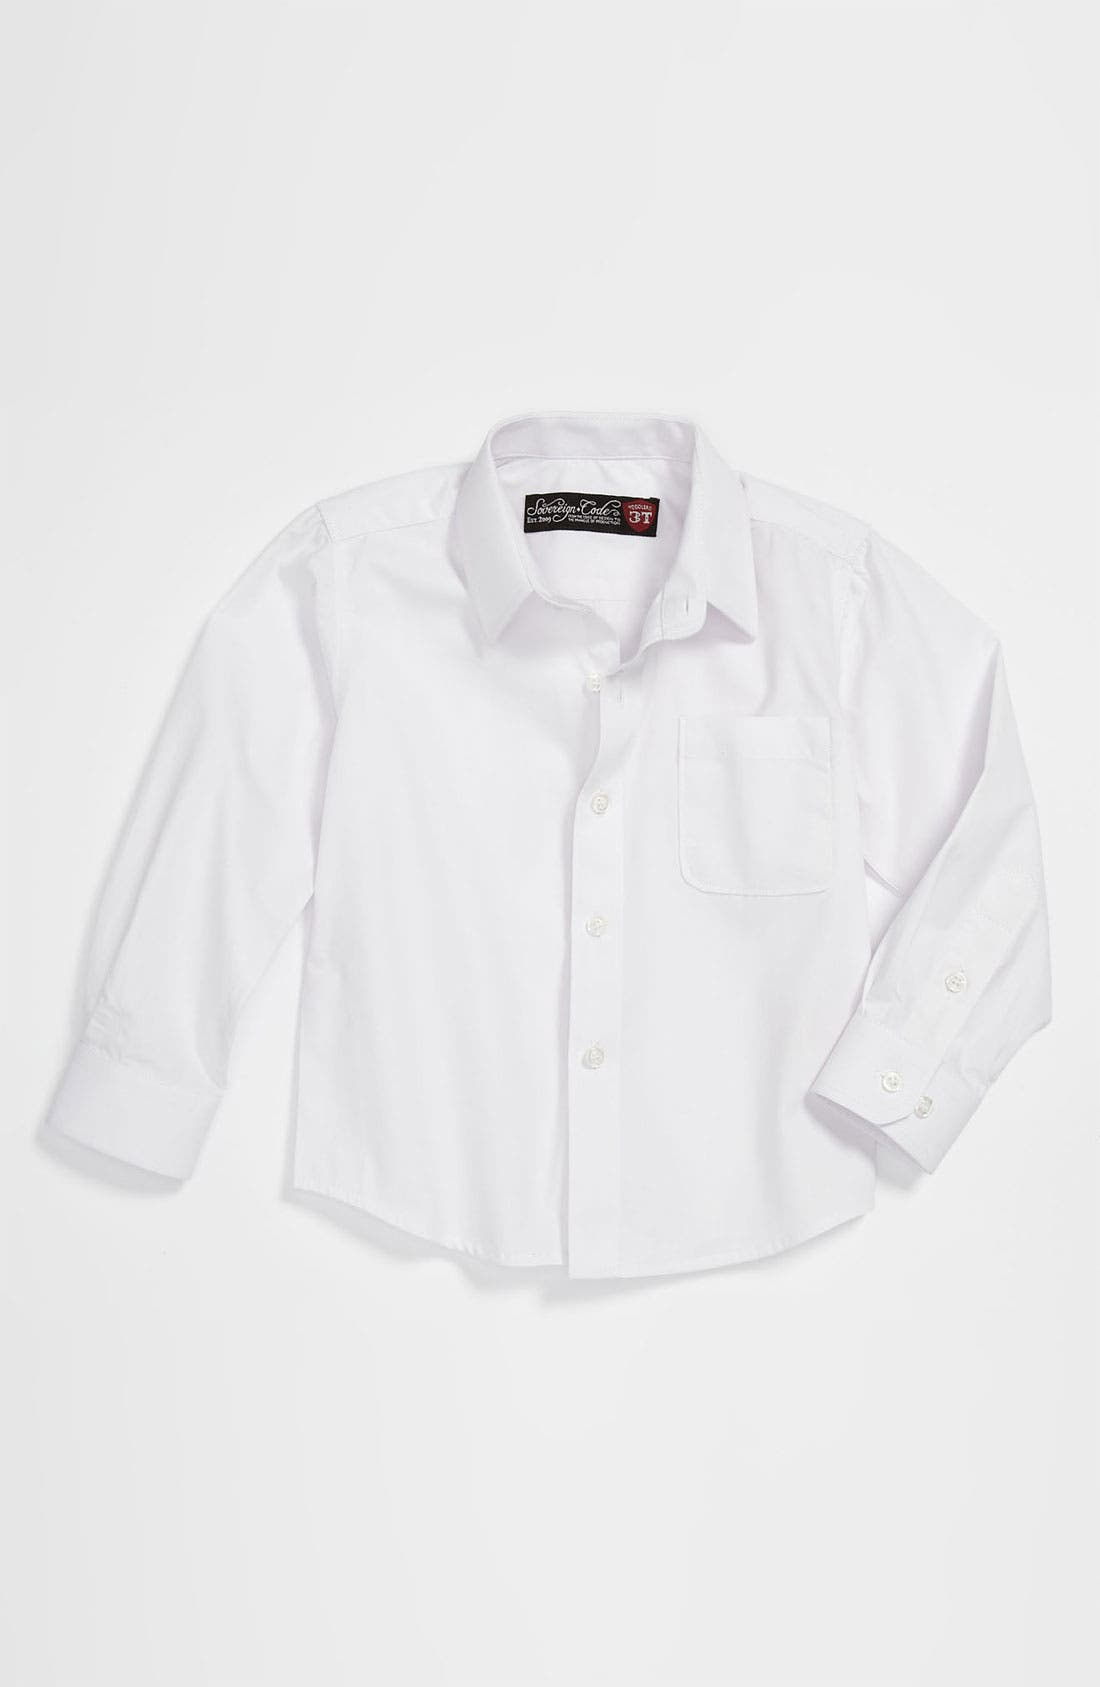 Main Image - Sovereign Code Woven Dress Shirt (Toddler)